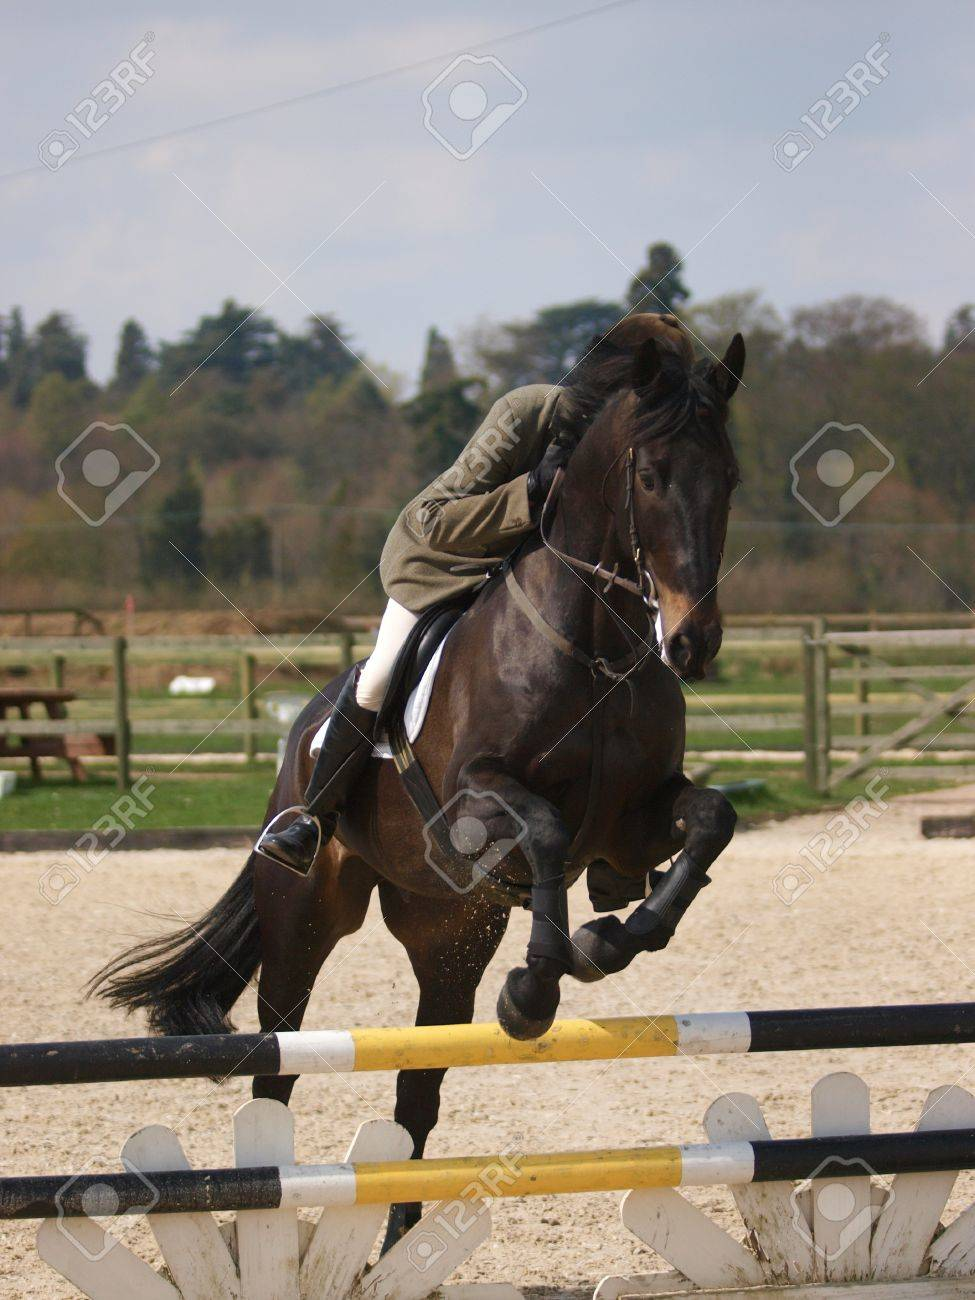 A Dark Bay Horse Clears A Fence In A Showjumping Arena Stock Photo Picture And Royalty Free Image Image 19134170